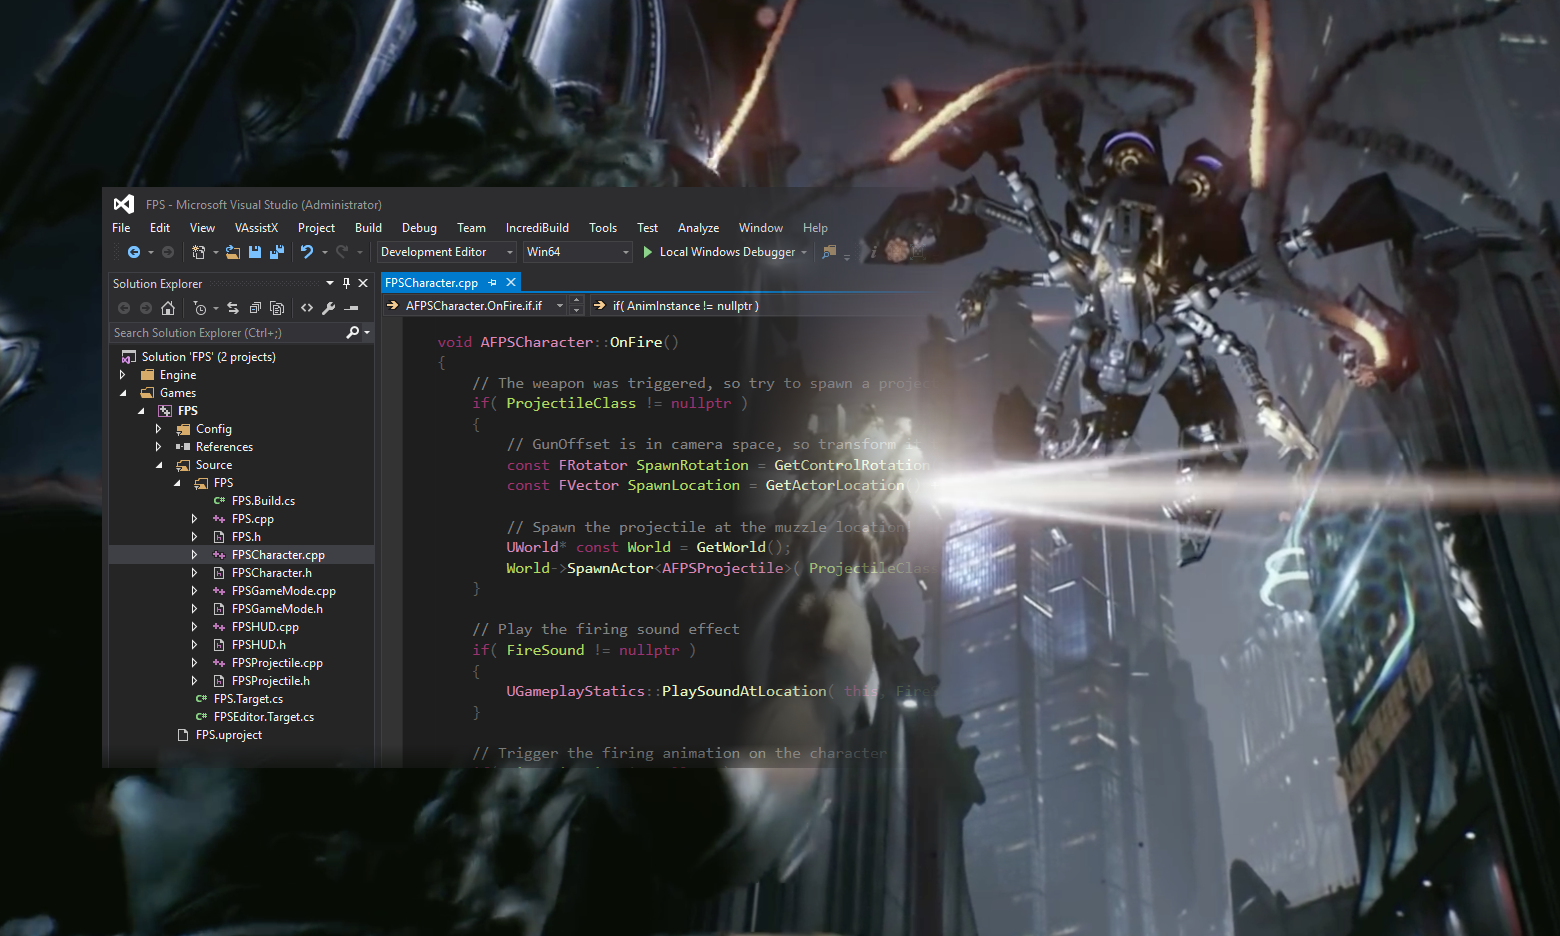 Installing the Unreal Engine in Visual Studio | The Visual Studio Blog